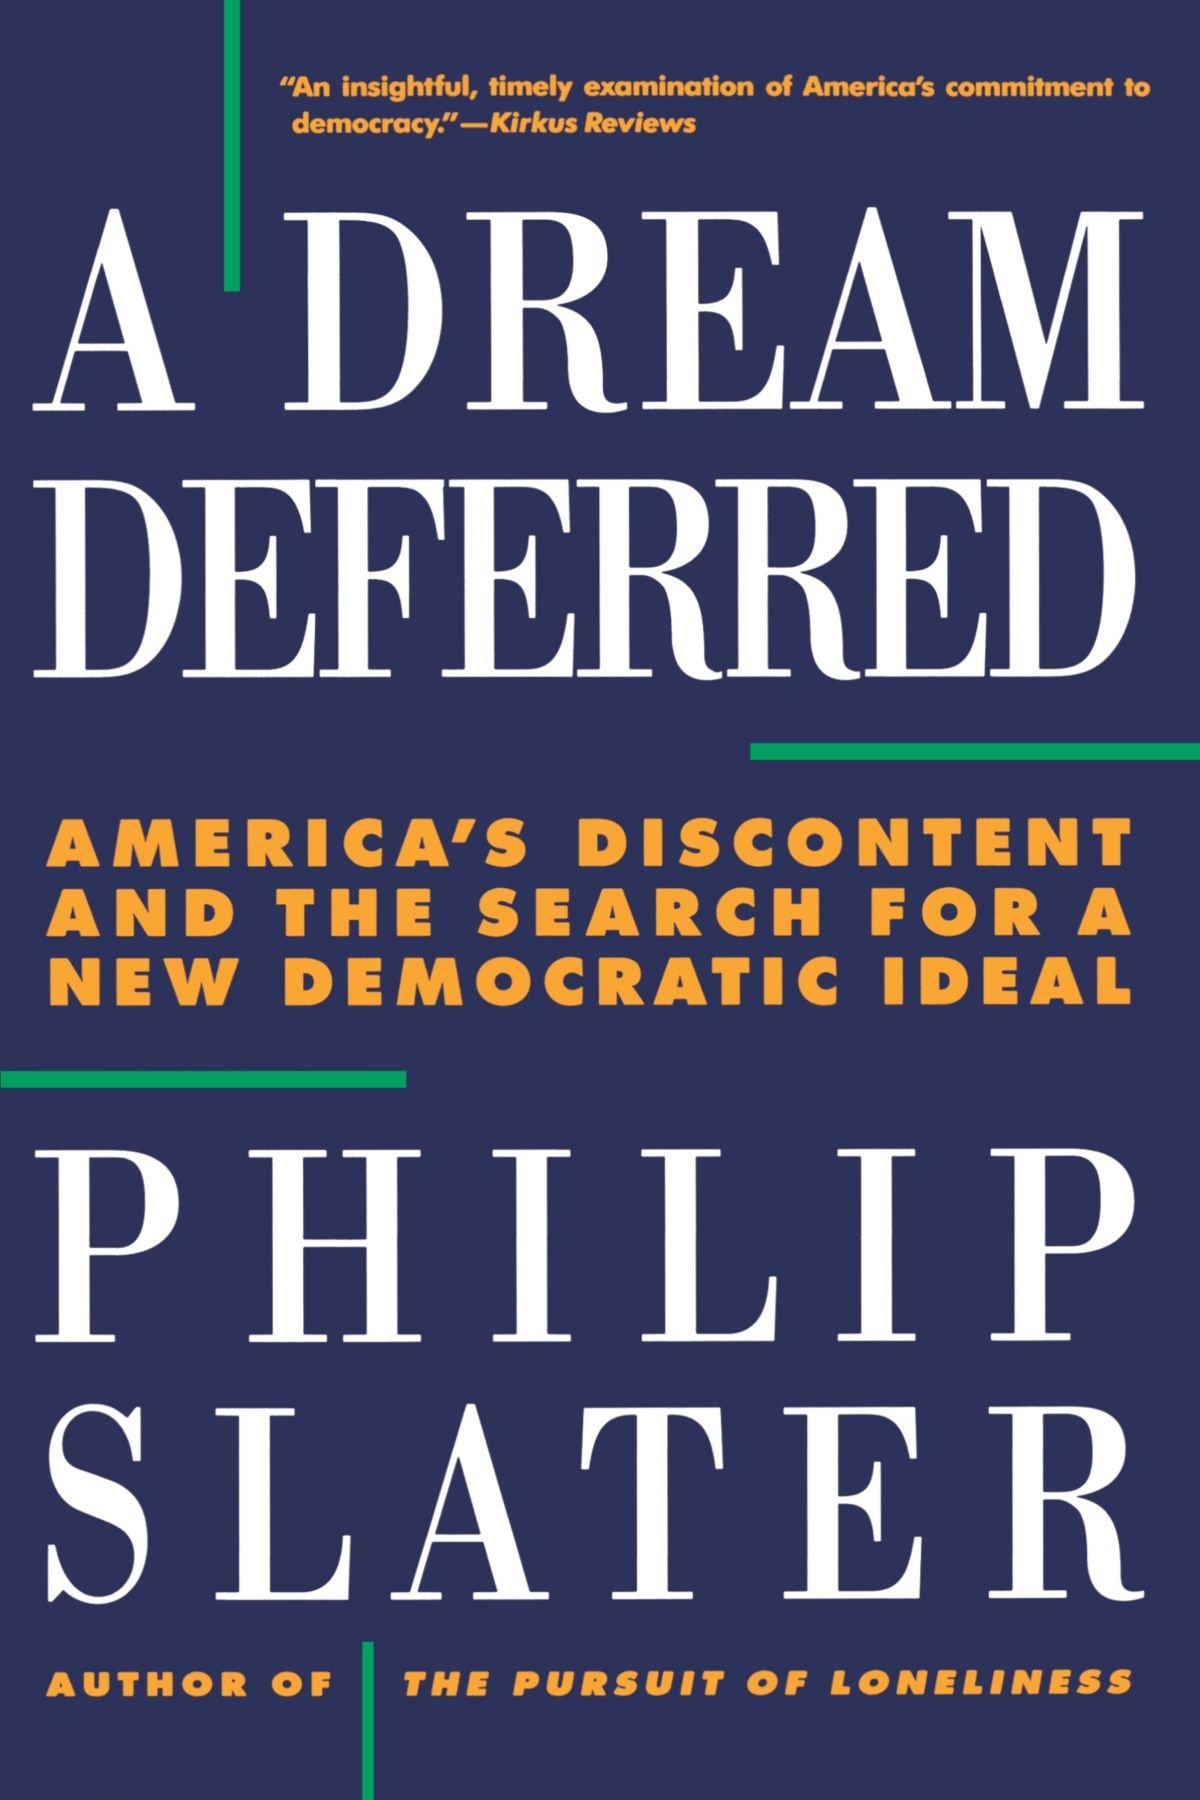 a dream deferred america s discontent and the search for a new a dream deferred america s discontent and the search for a new democratic ideal philip slater 9780807043059 com books